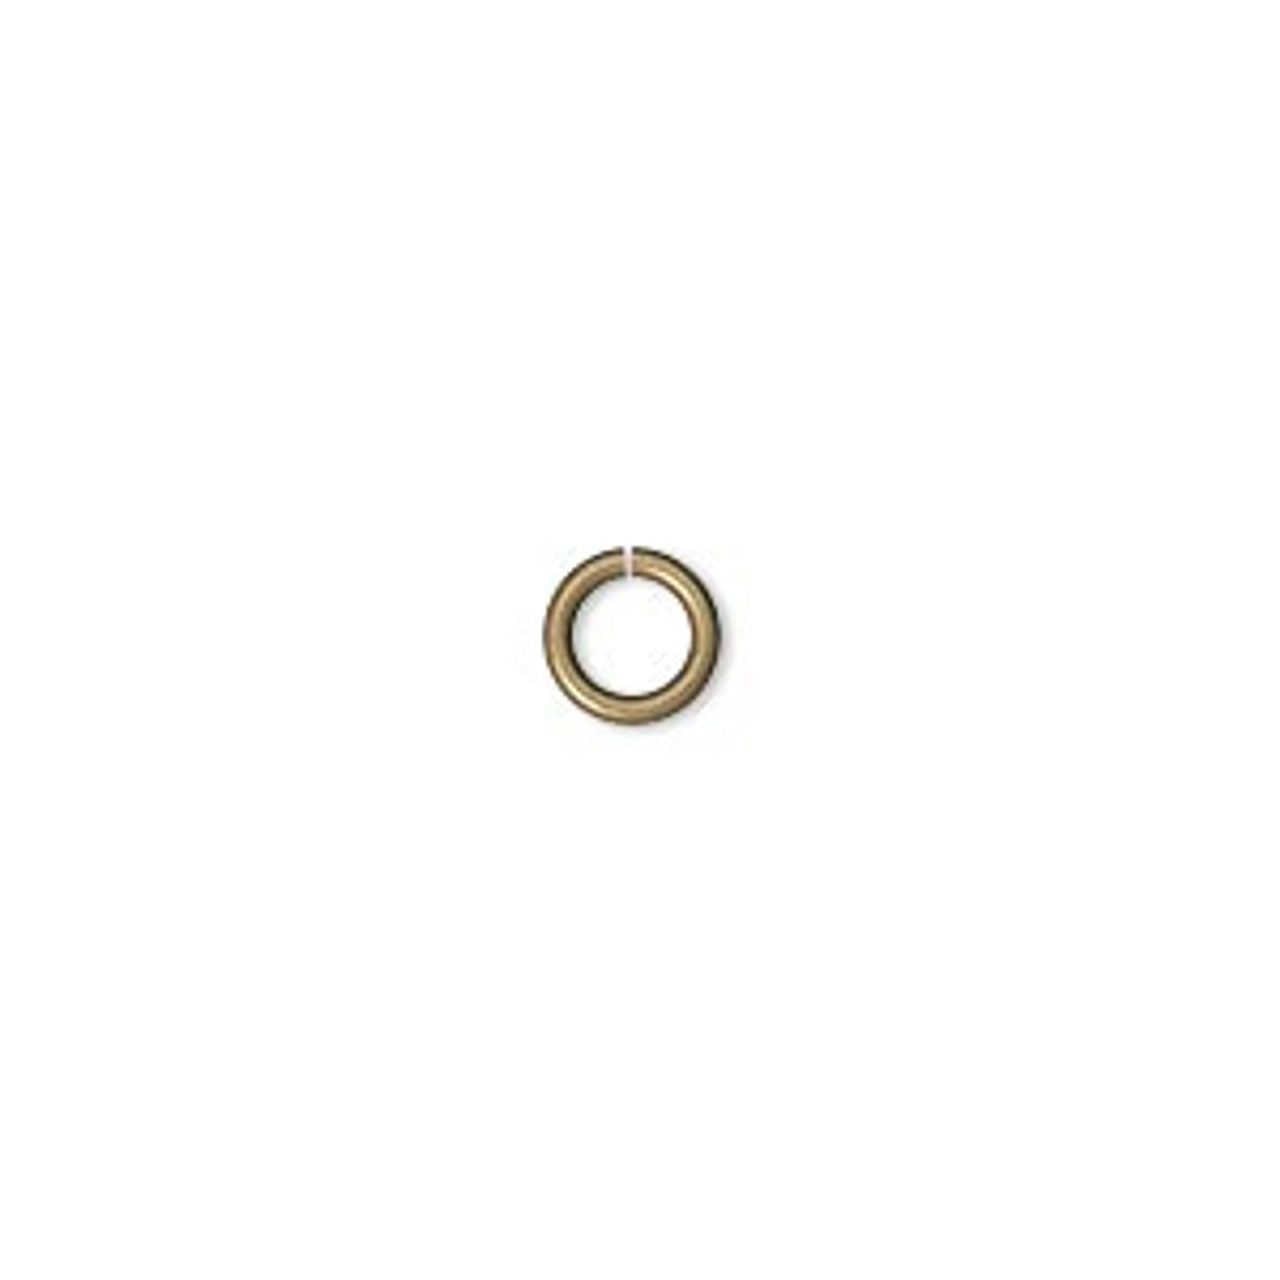 6mm Antique Gold Jump Rings 100pk